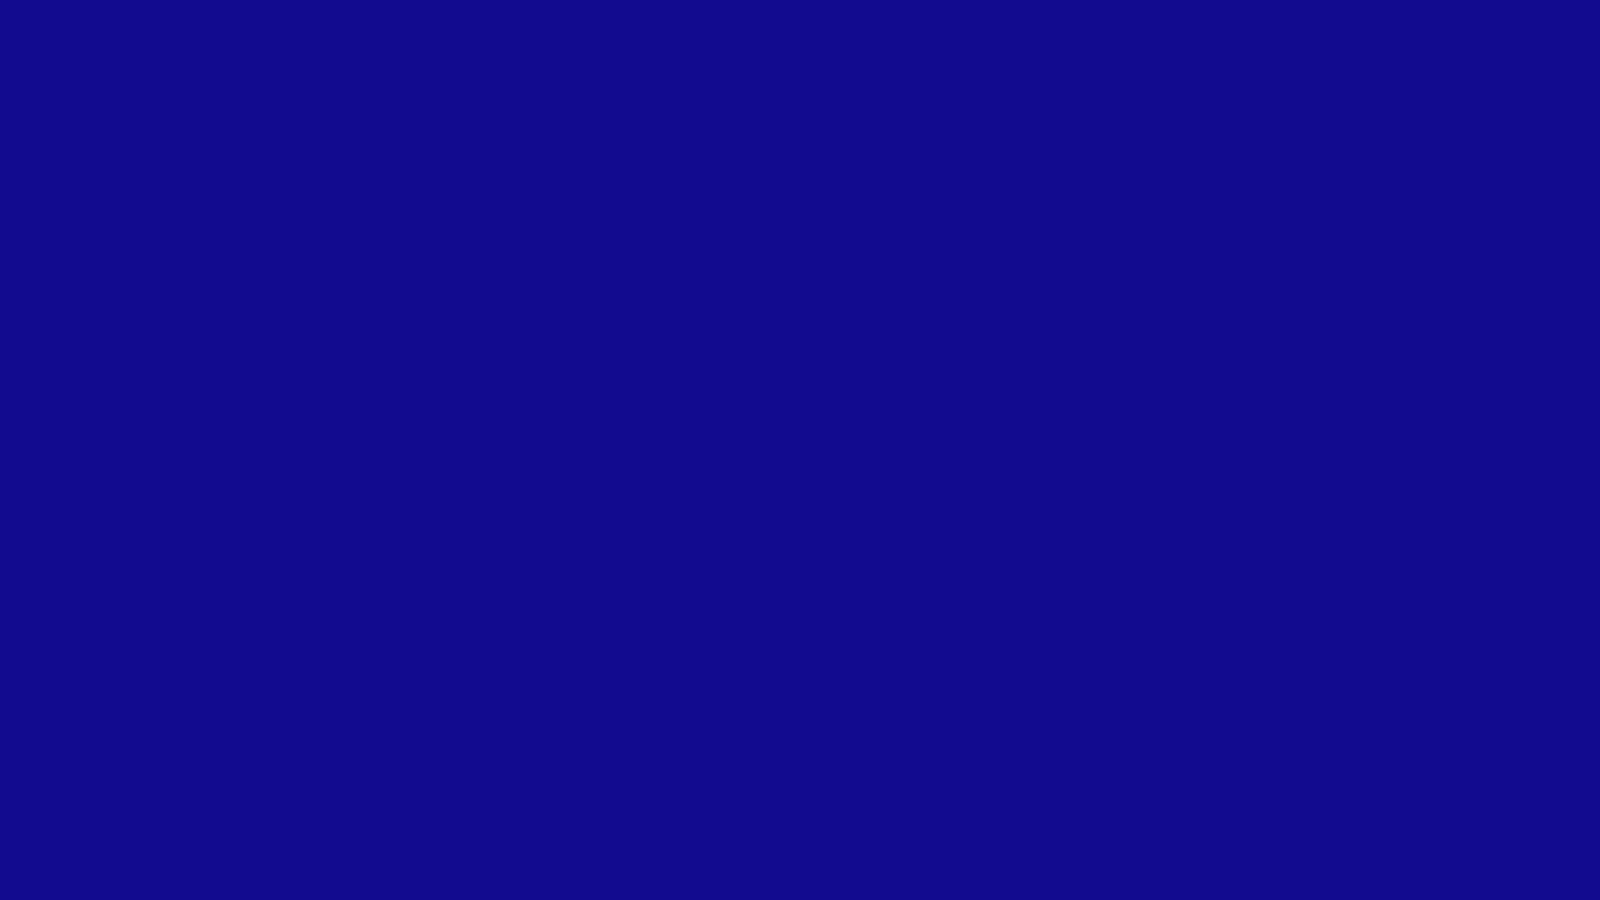 1600x900 Ultramarine Solid Color Background